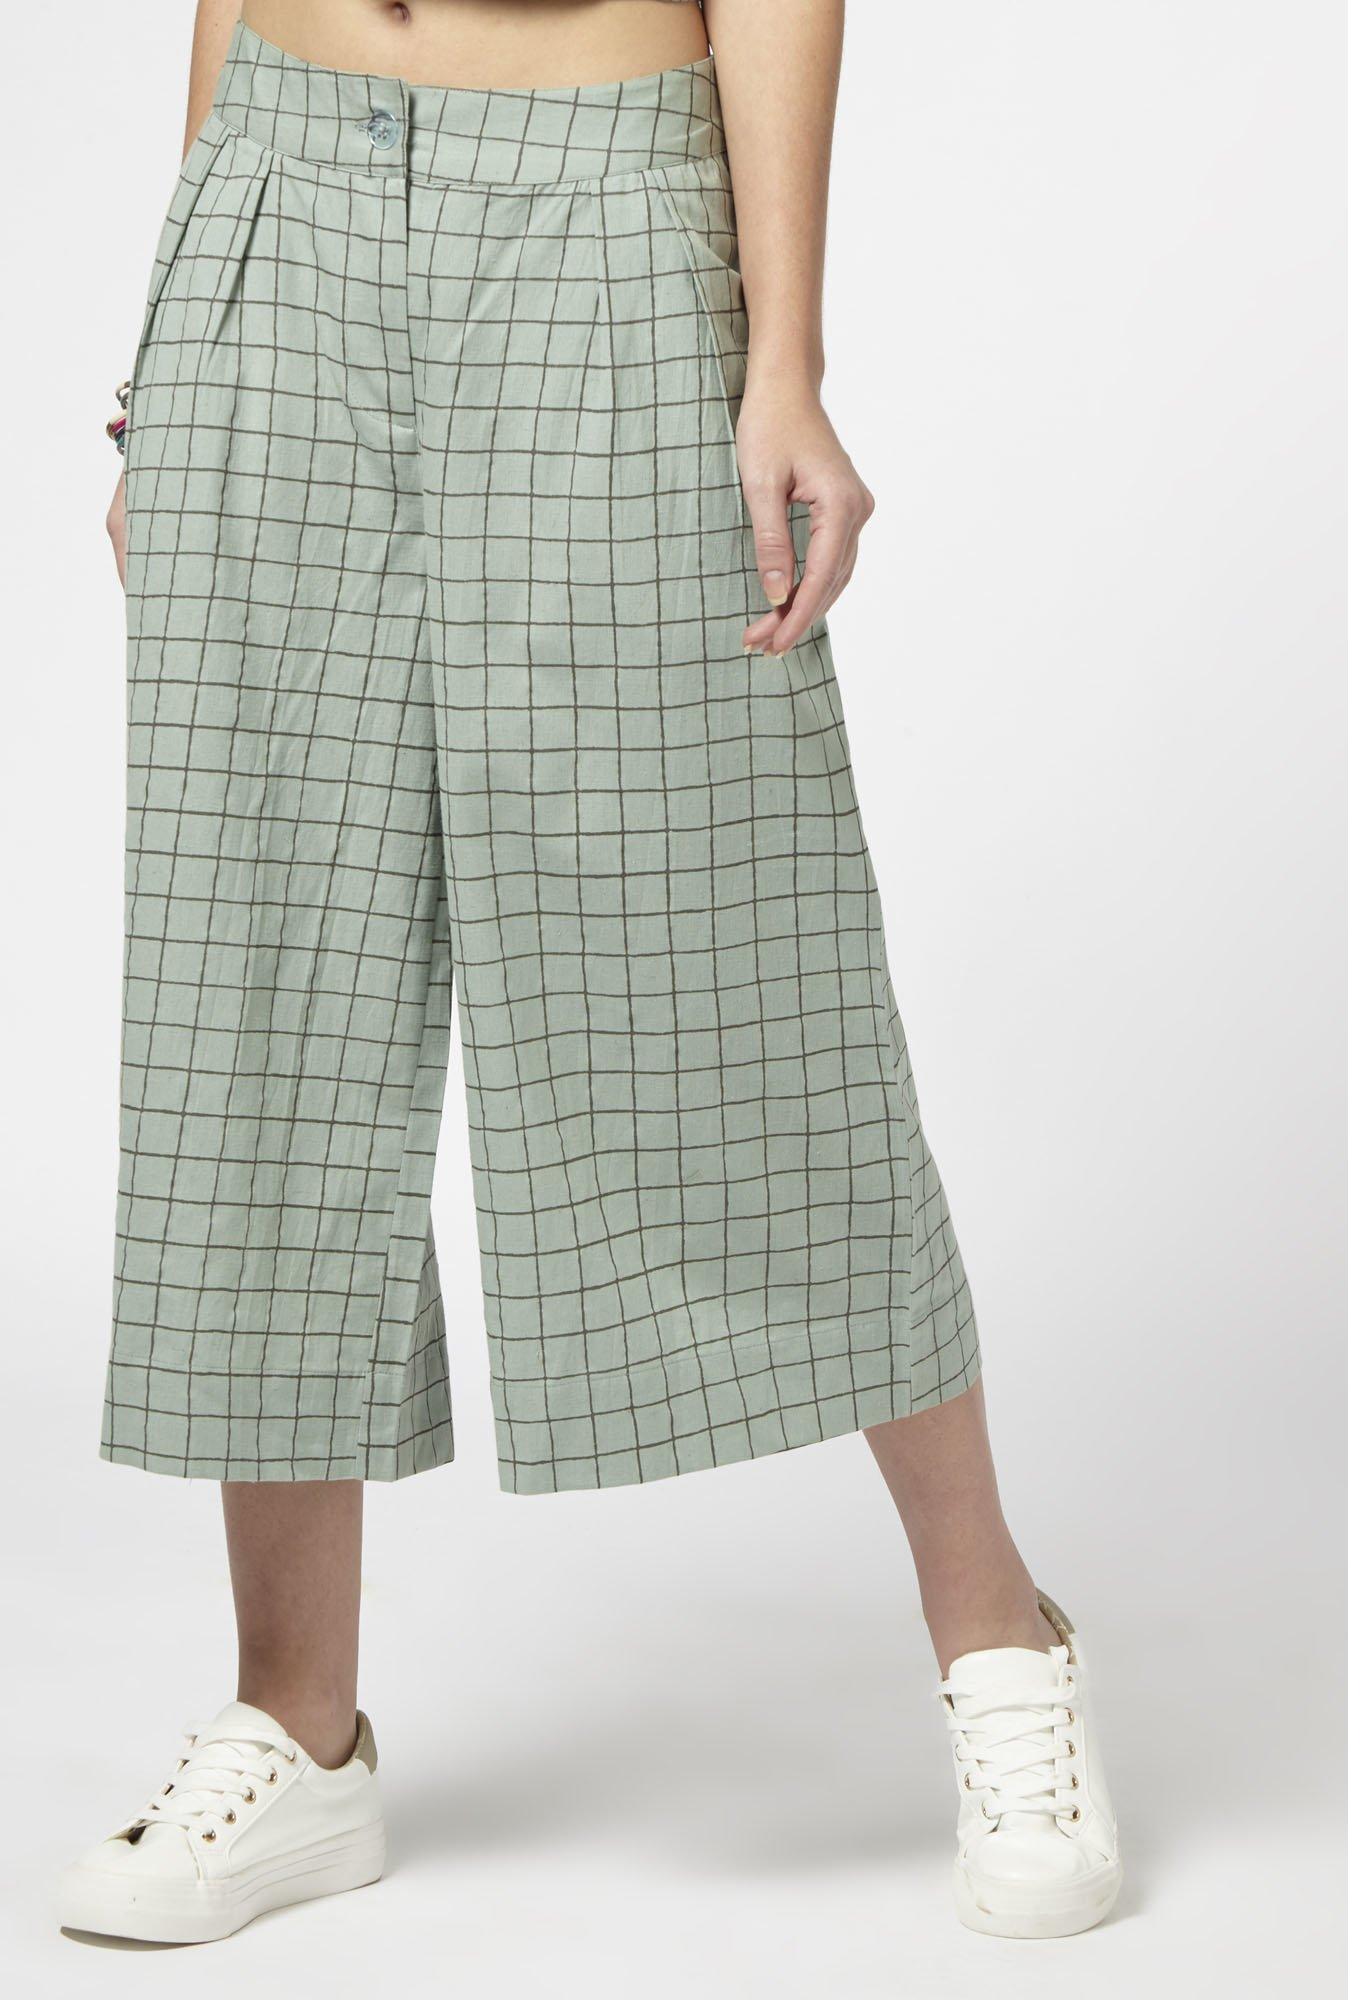 Bombay Paisley by Westside Light Green Culottes